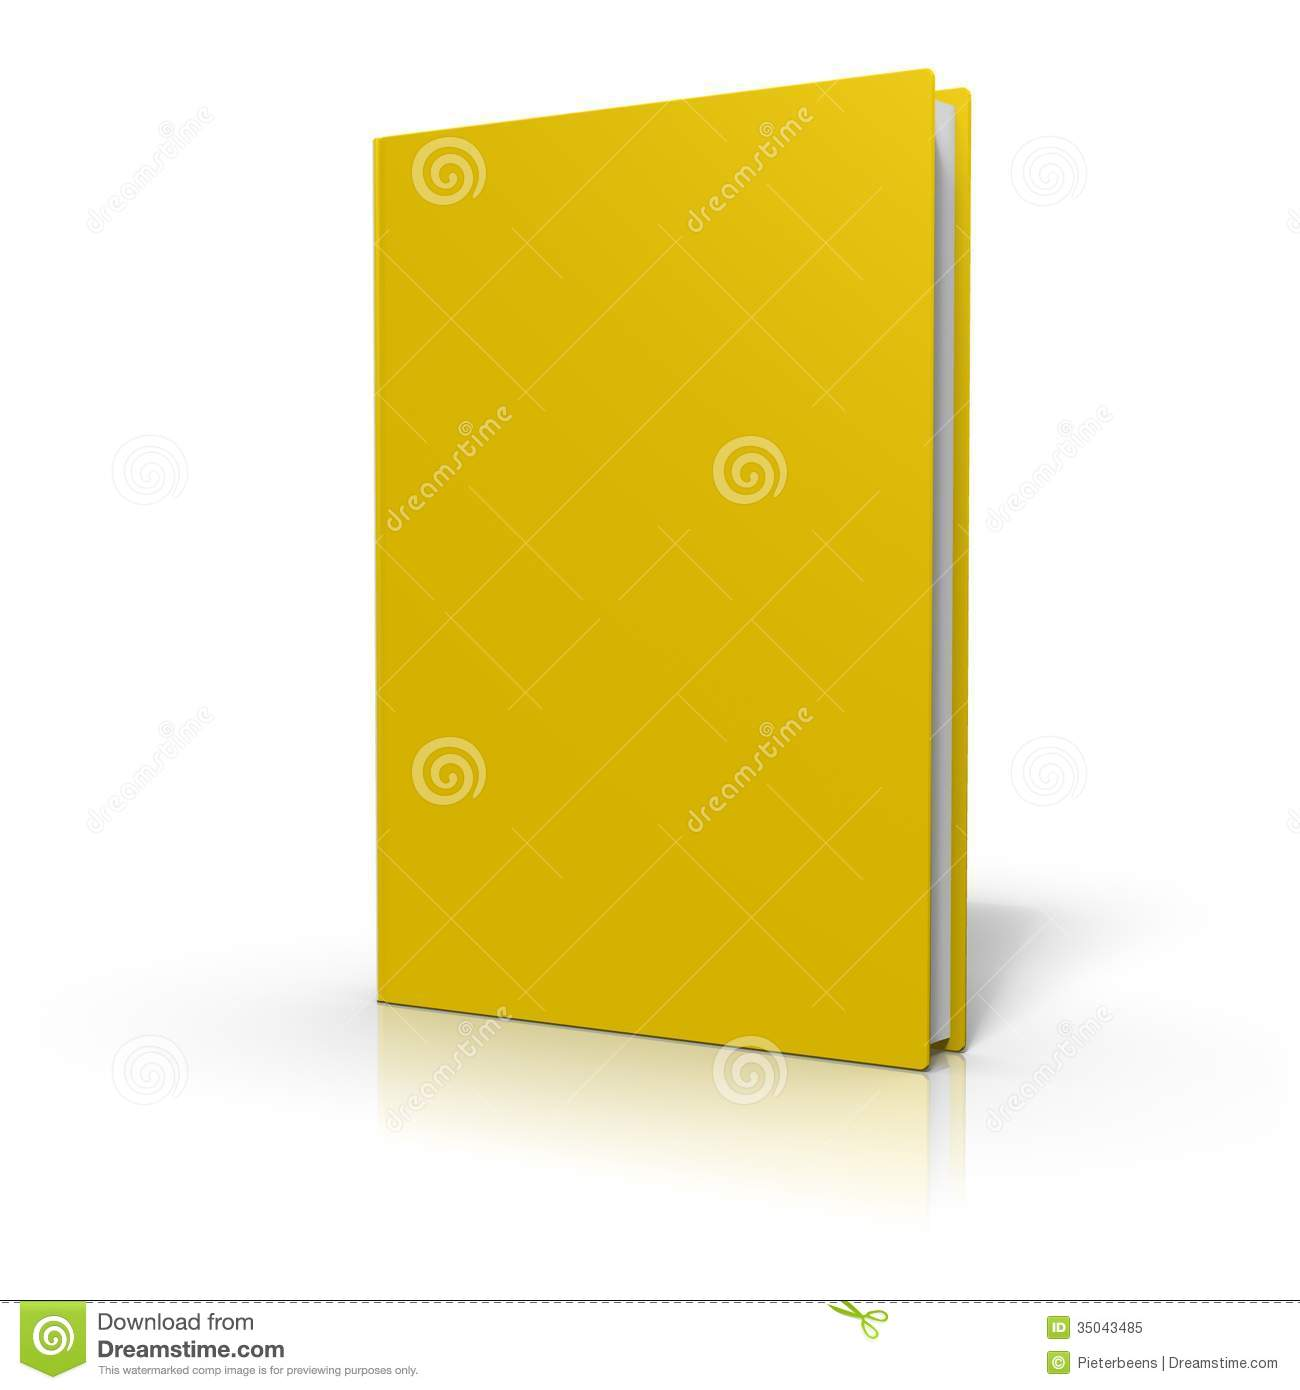 Book Cover White Background : Book with yellow cover isolated on white background